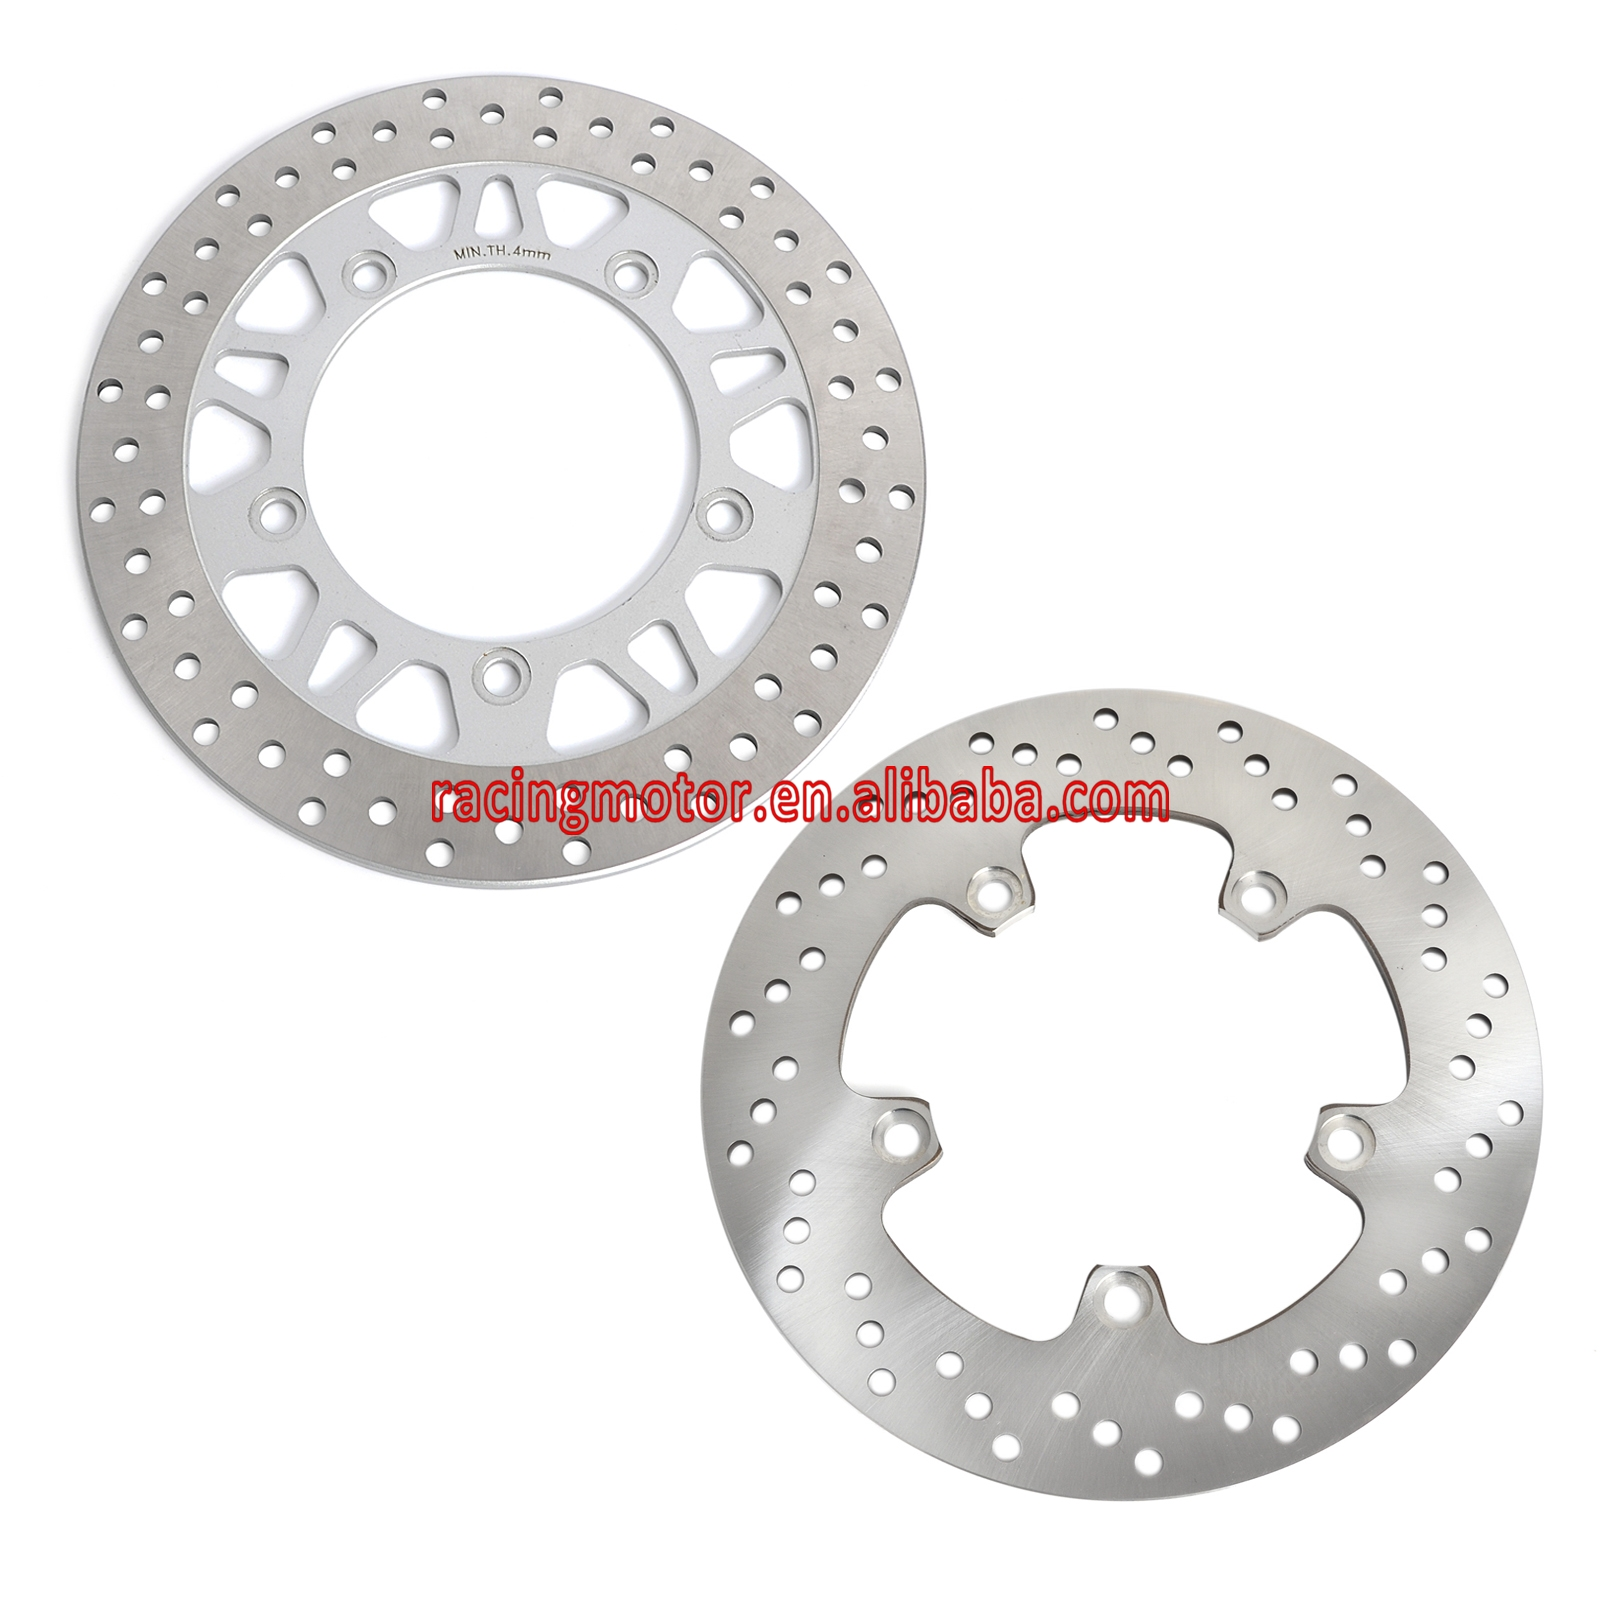 Motorycle Front & Rear Brake Disc Rotor for Suzuki AN650 2004 - 2012 2005 2006 2007 2008 2009 2010 2011 AN 650